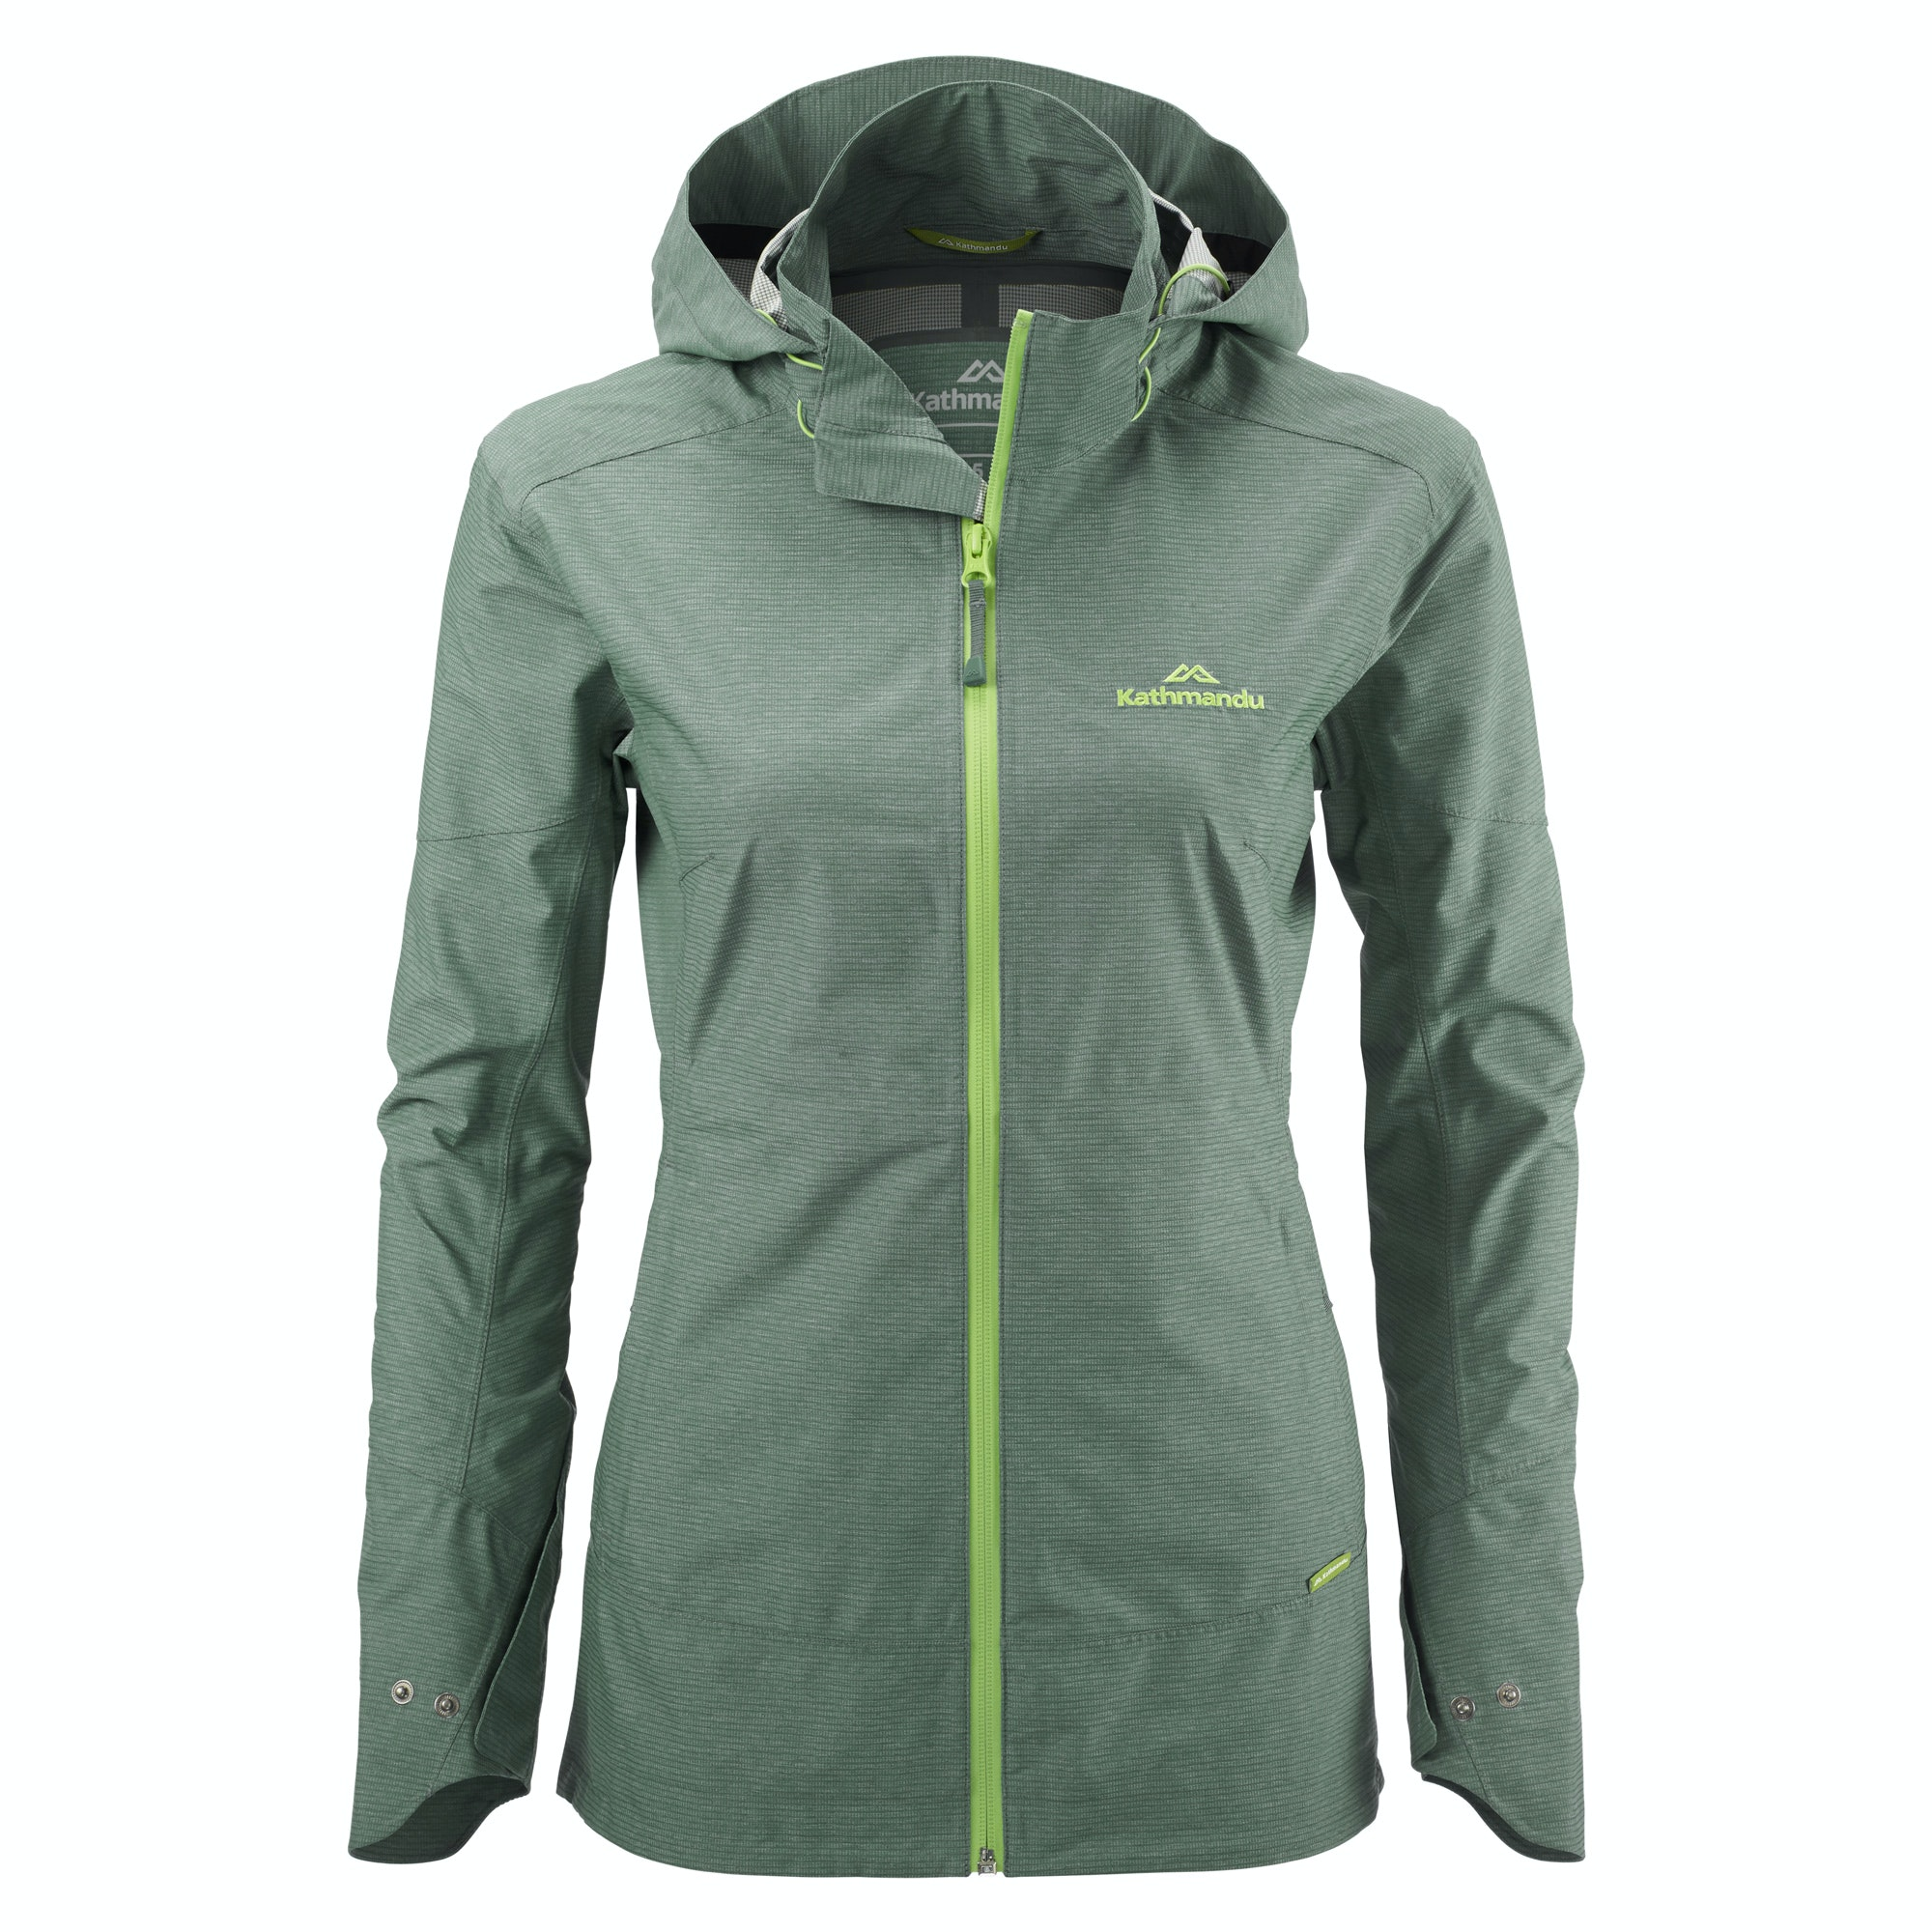 Women's rain jackets brisbane